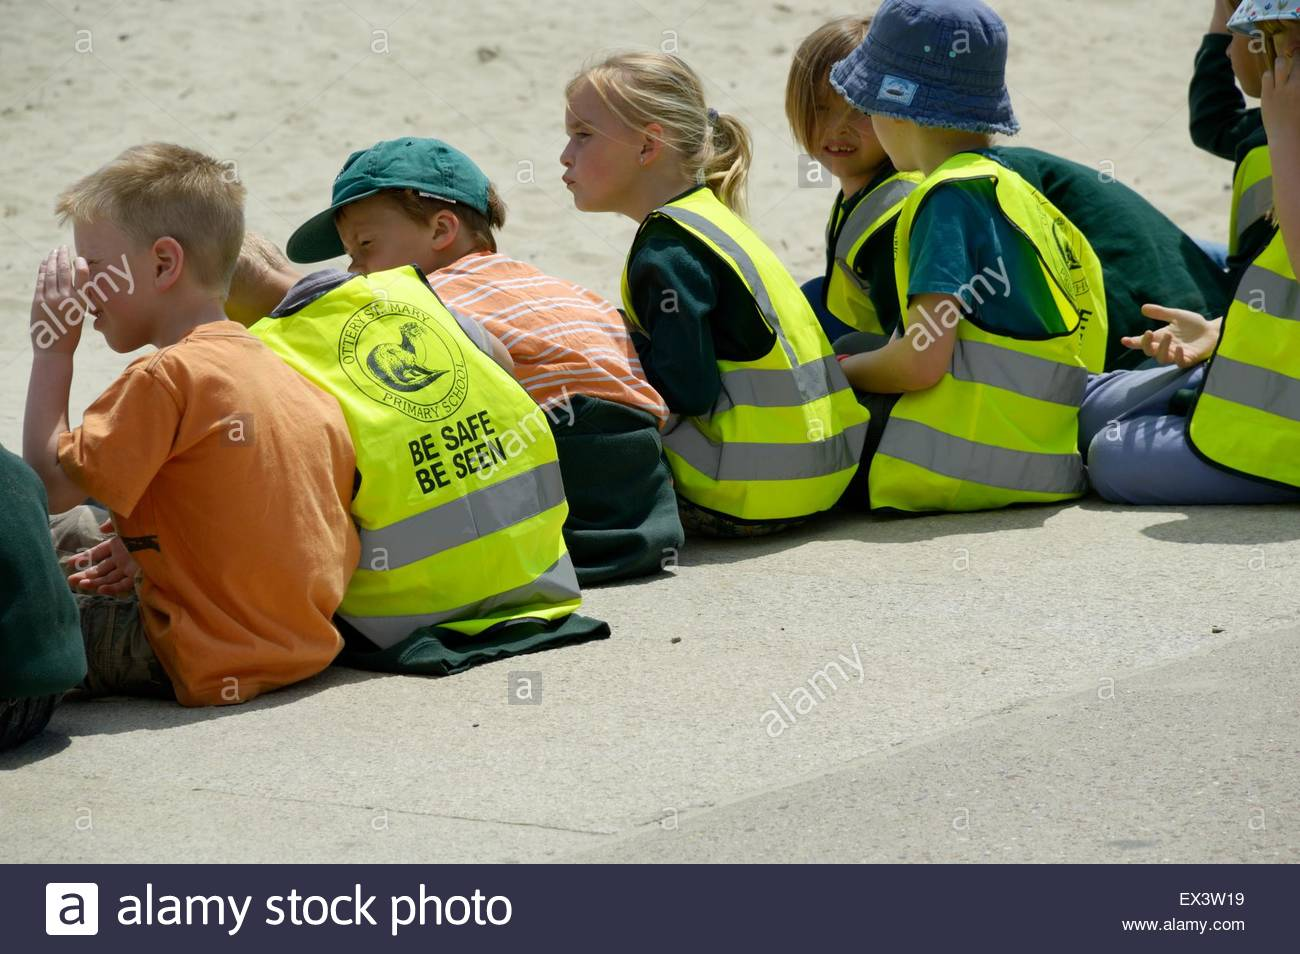 Young children sitting by the beach, some with safety jackets on with the slogan 'Be Safe, Be Seen' on the back Stock Photo